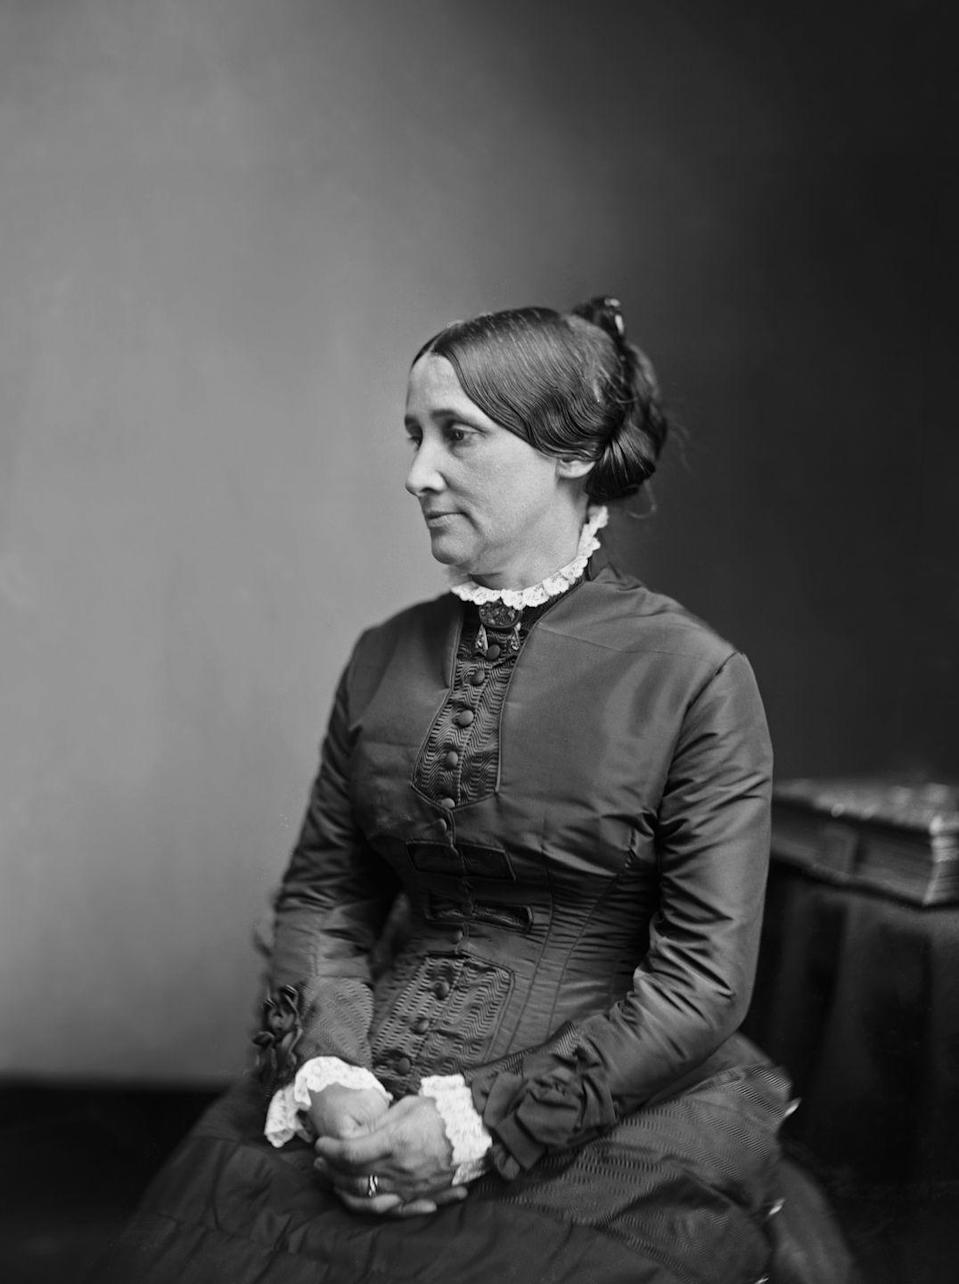 "<p>Sticking to the modest clothing trends of the time, Lucy Webb Hayes usually wore <a href=""https://americanhistory.si.edu/firstladies-interactive/the-fashionable-first-lady-text.html"" rel=""nofollow noopener"" target=""_blank"" data-ylk=""slk:modest embroidered dresses"" class=""link rapid-noclick-resp"">modest embroidered dresses</a> in soft colors that covered her throat and arms. </p>"